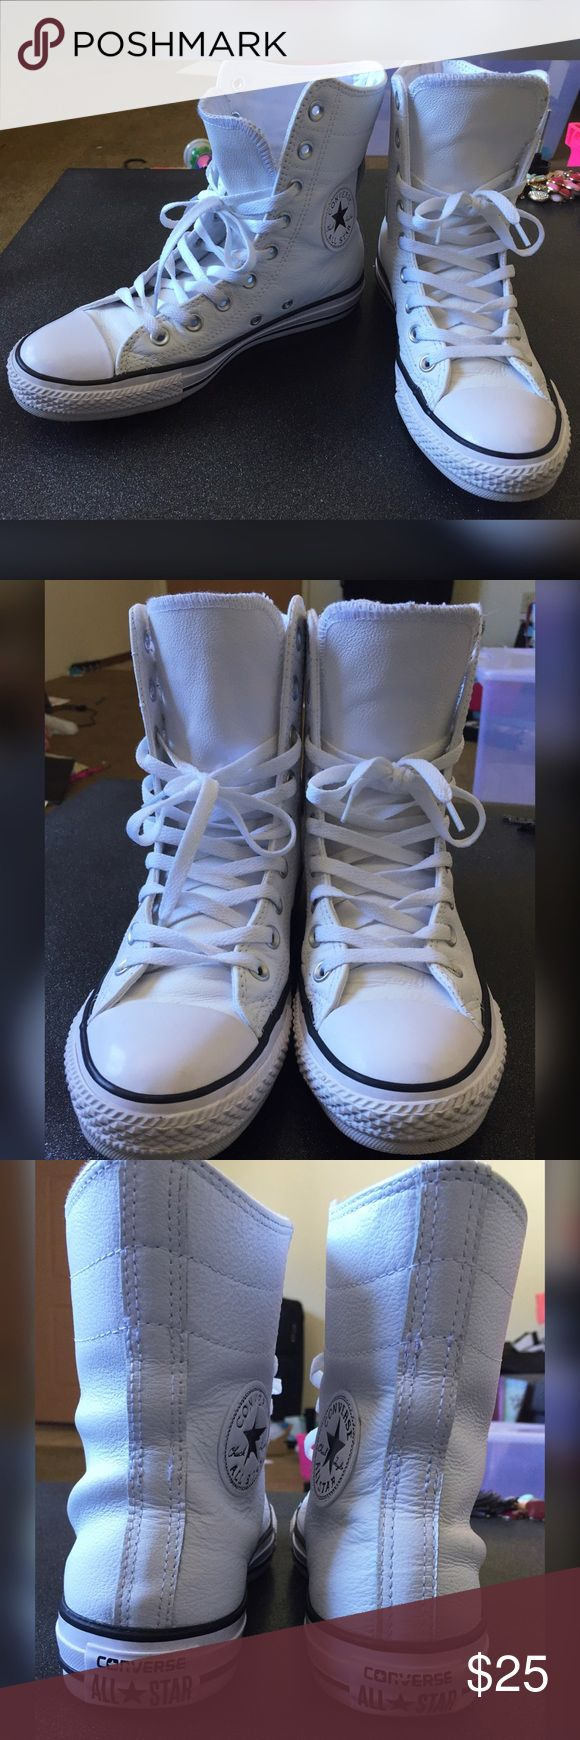 White Leather Converse Size 7.5 used but still in great condition, no damage! Converse Shoes Lace Up Boots